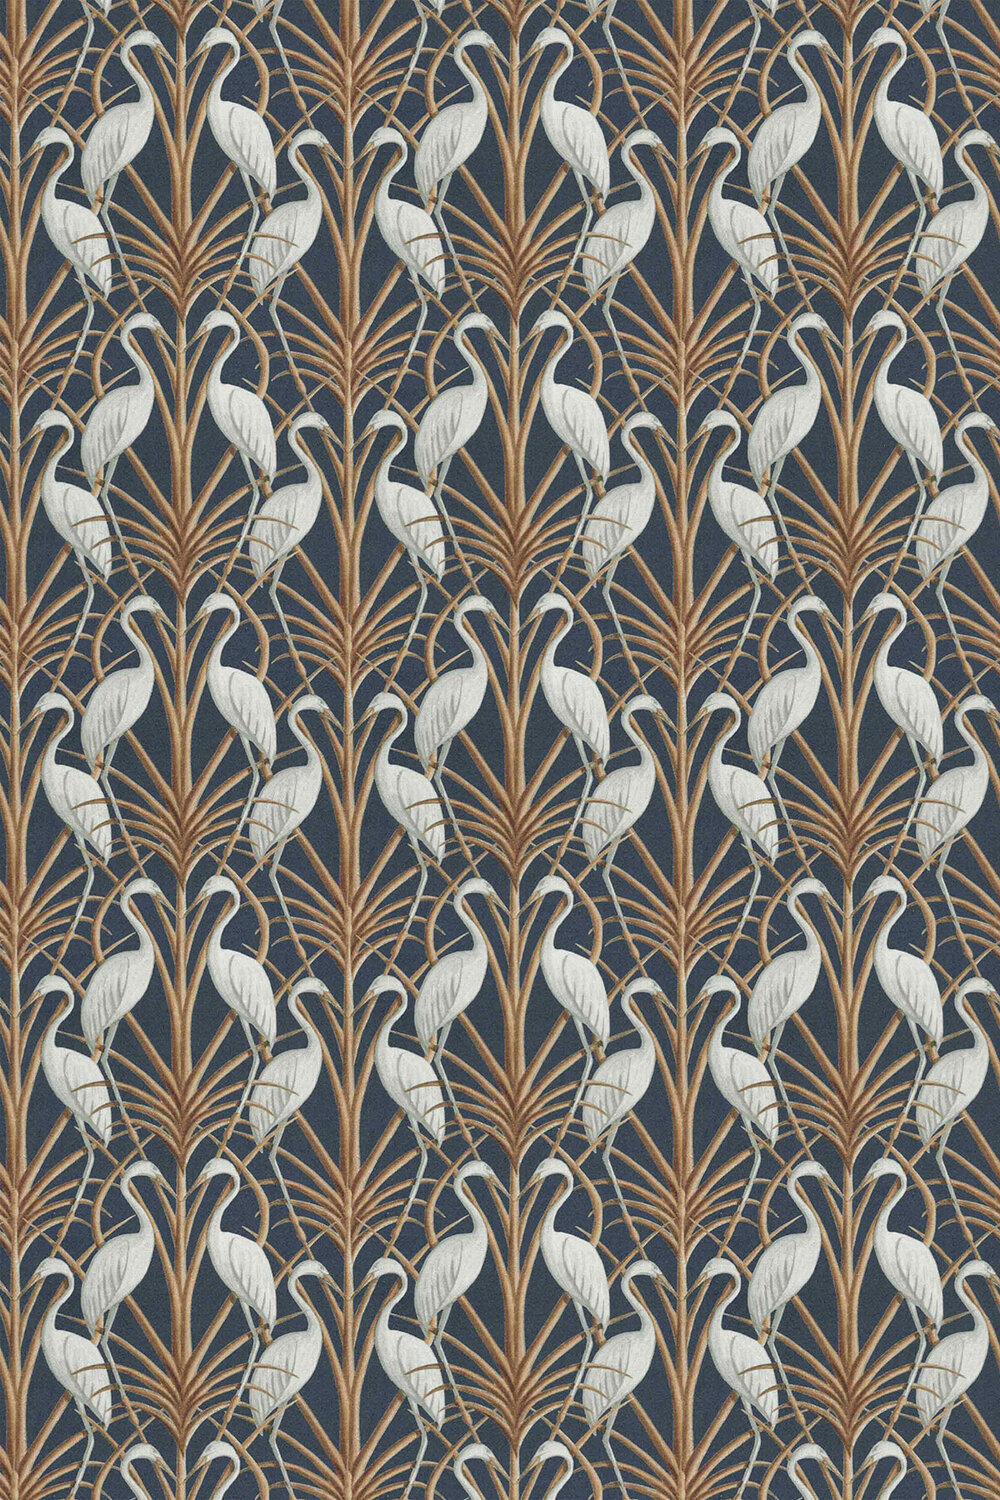 Nouveau Heron Fabric - Navy - by The Chateau by Angel Strawbridge